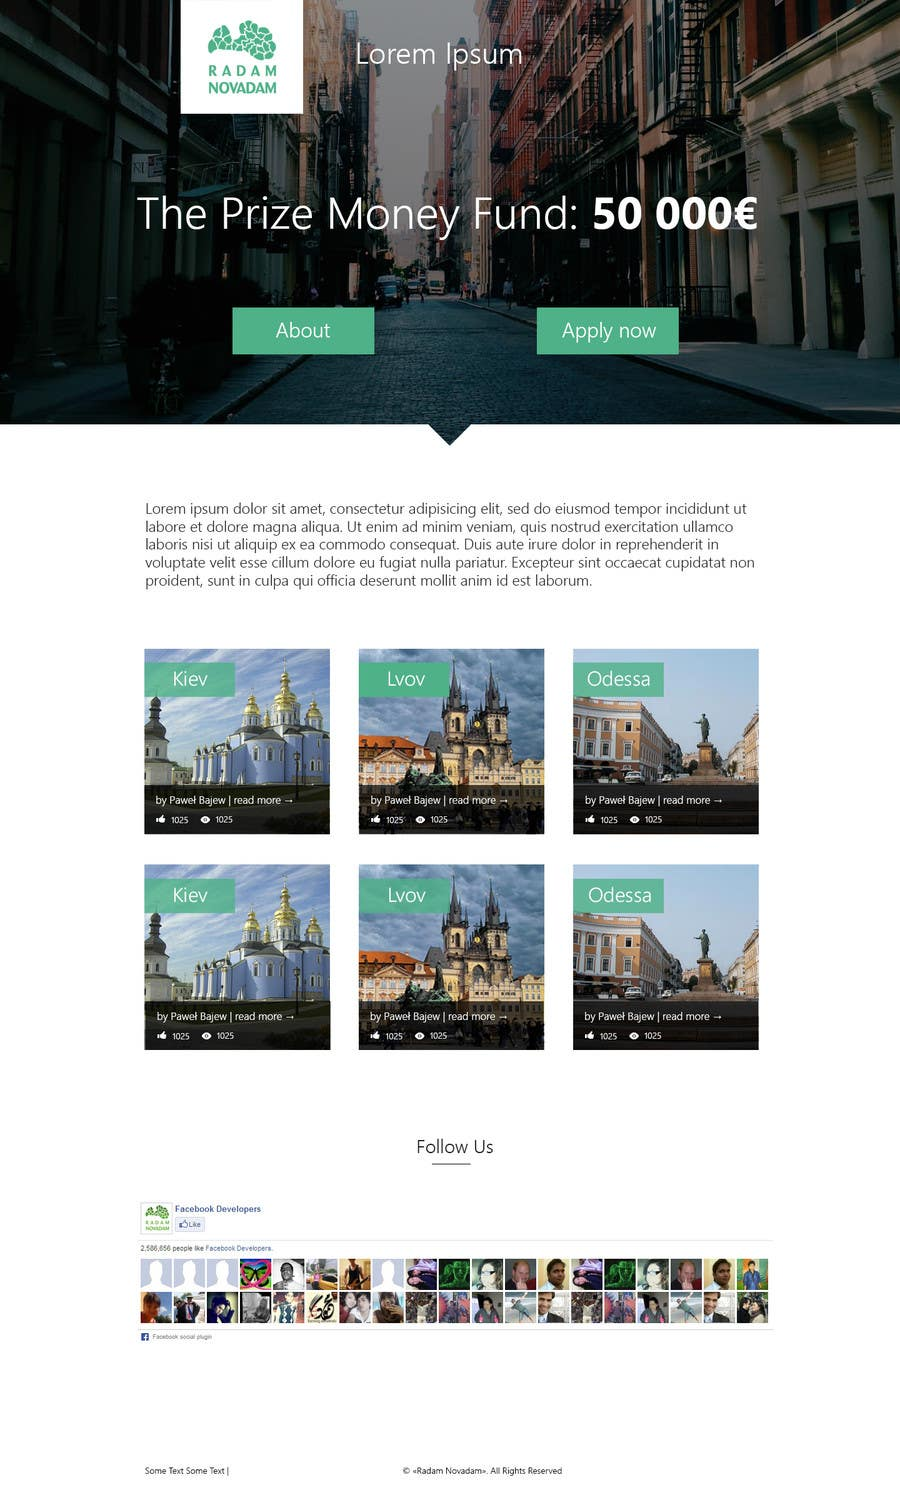 #5 for Design for website front page by firstmaster